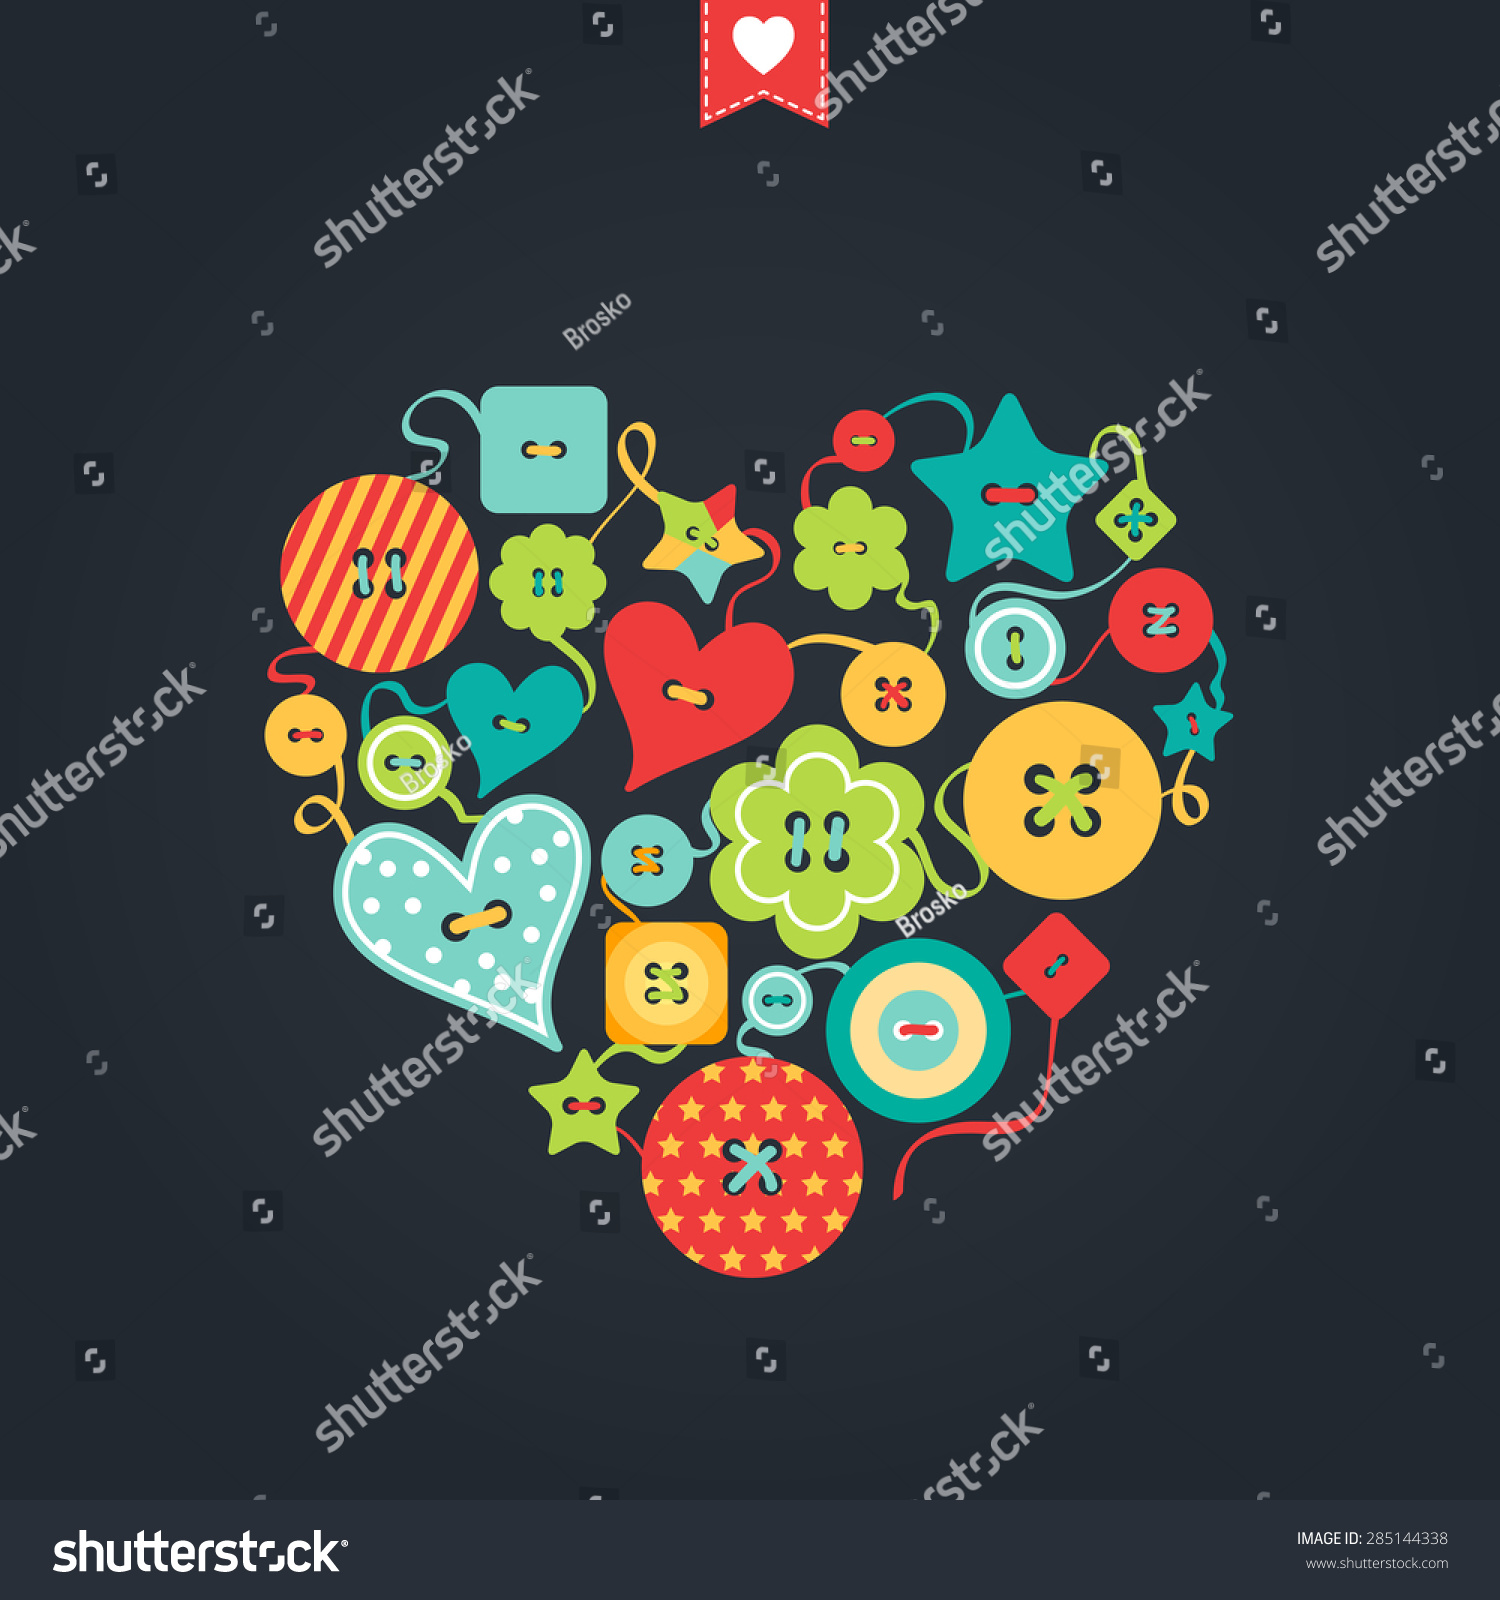 Creative greeting card happy valentines day stock vector 285144338 creative greeting card happy valentines day wedding marriage birthday colored buttons kristyandbryce Images